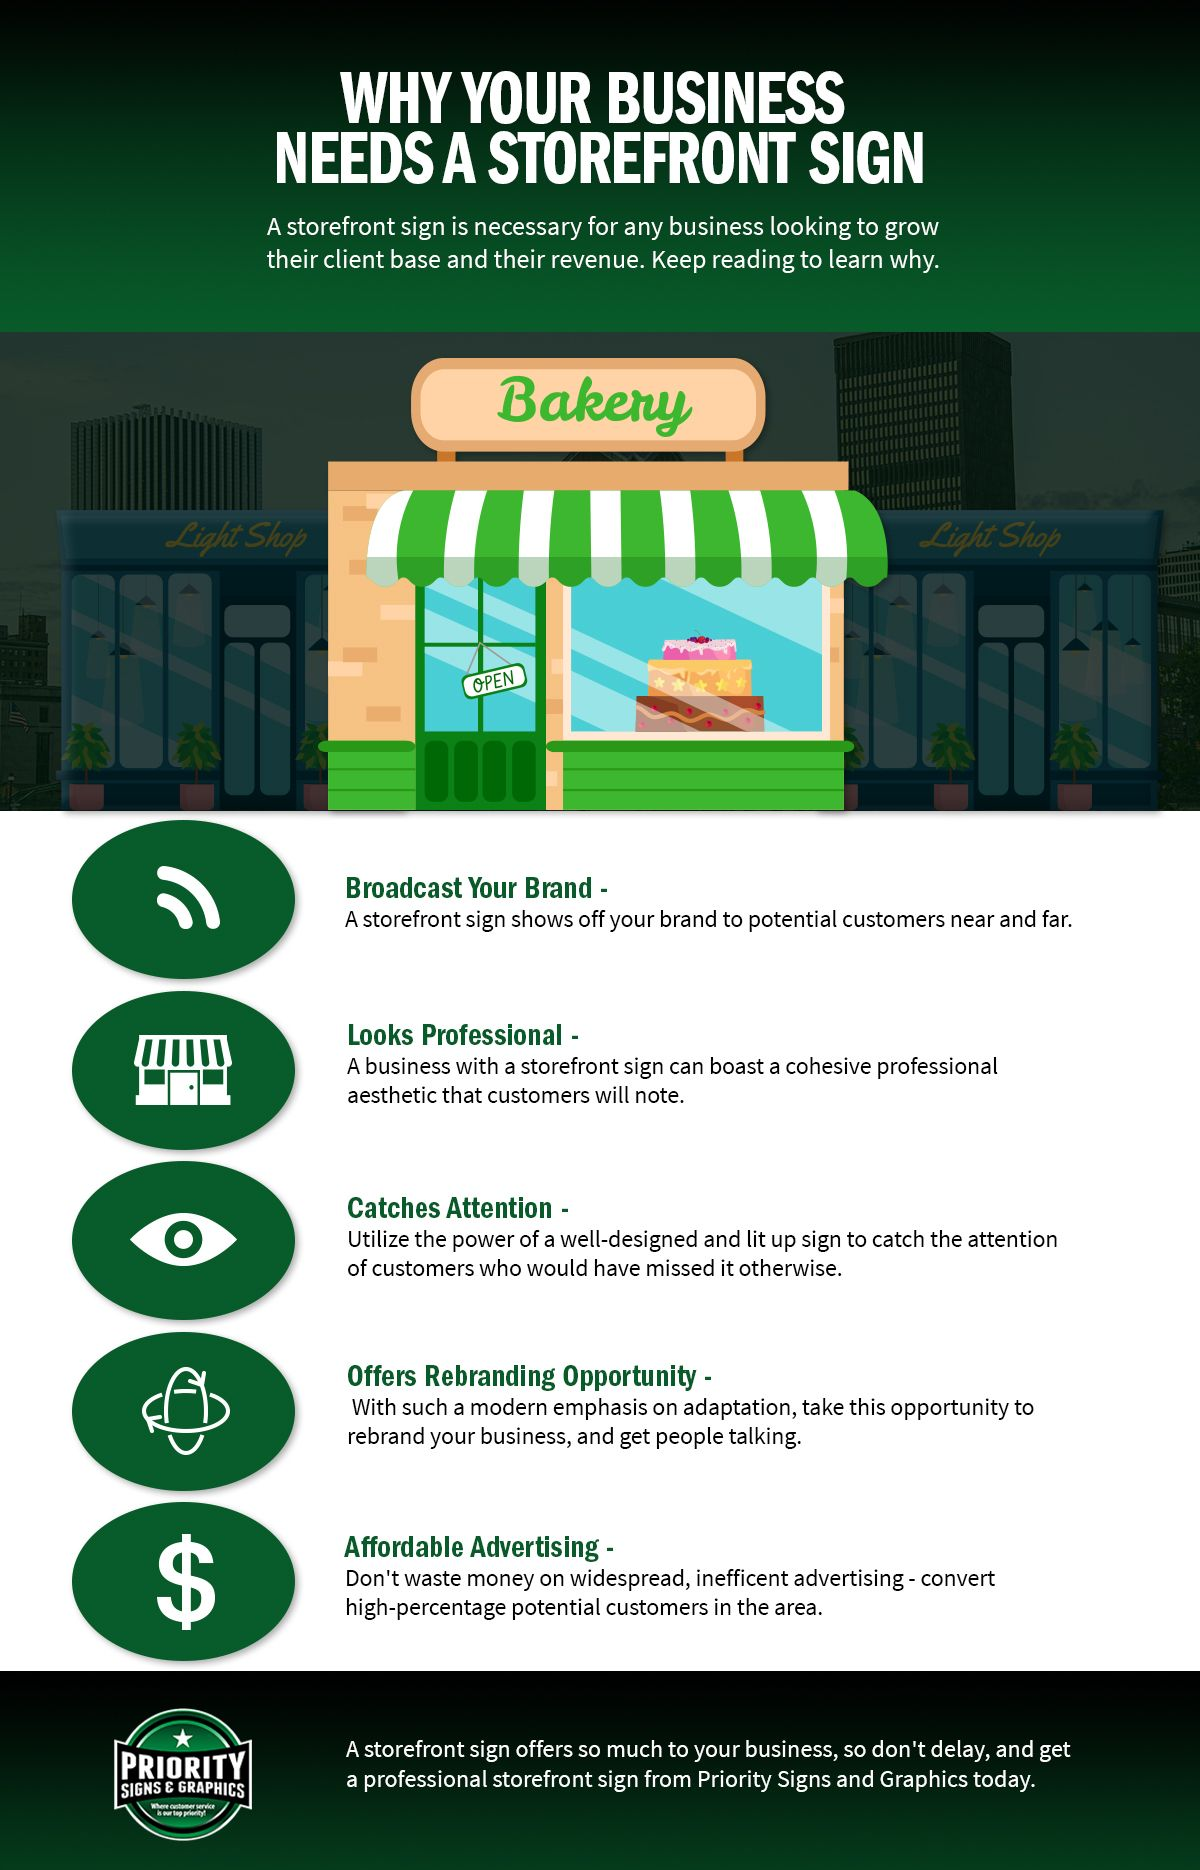 Why Your Business Needs a Storefront Sign.jpg